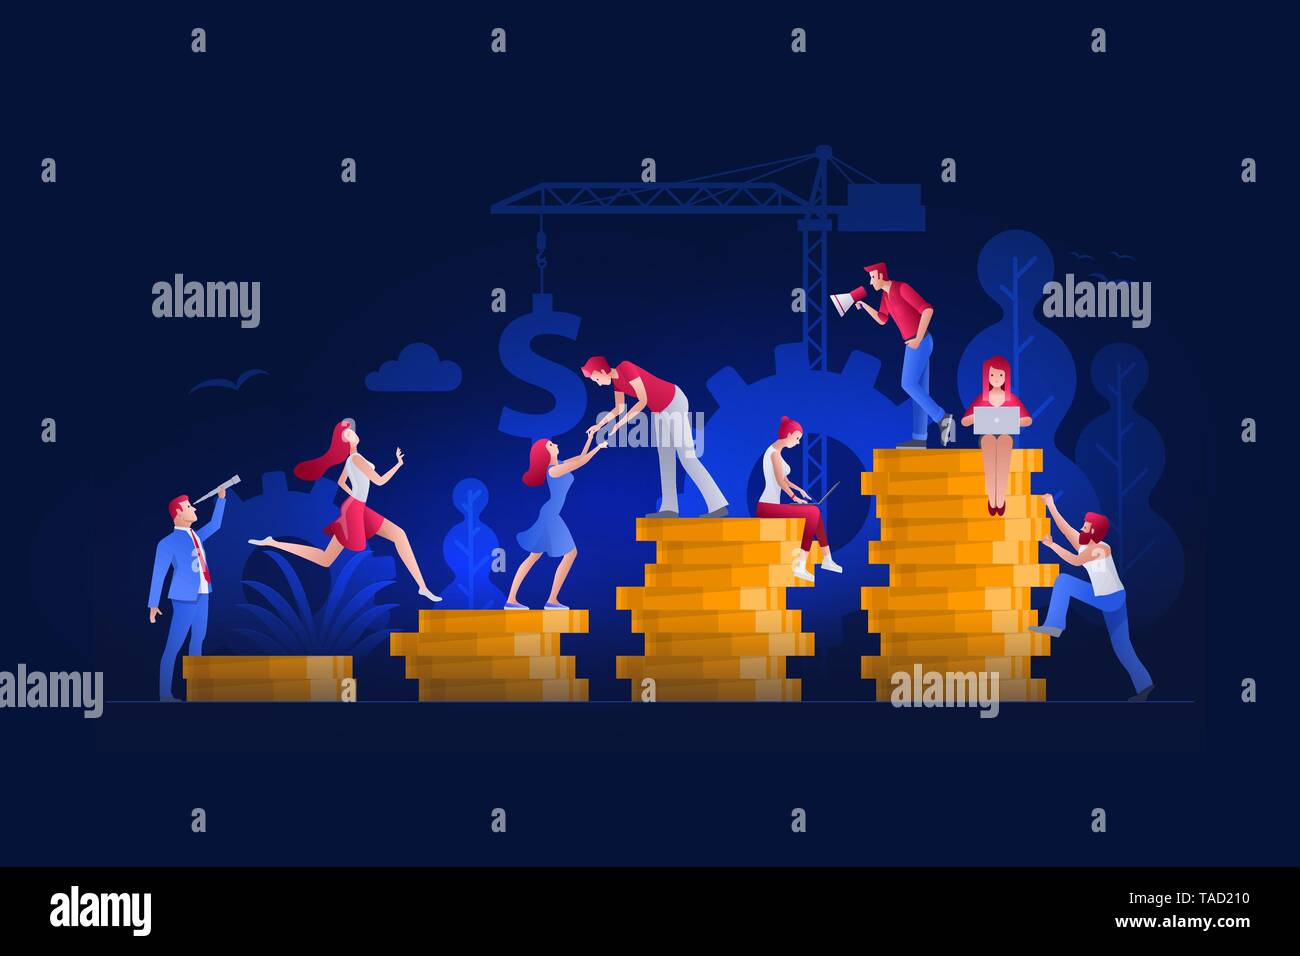 Vector illustration people are working on financial issues. Investment management, career growth to success concept. - Stock Vector